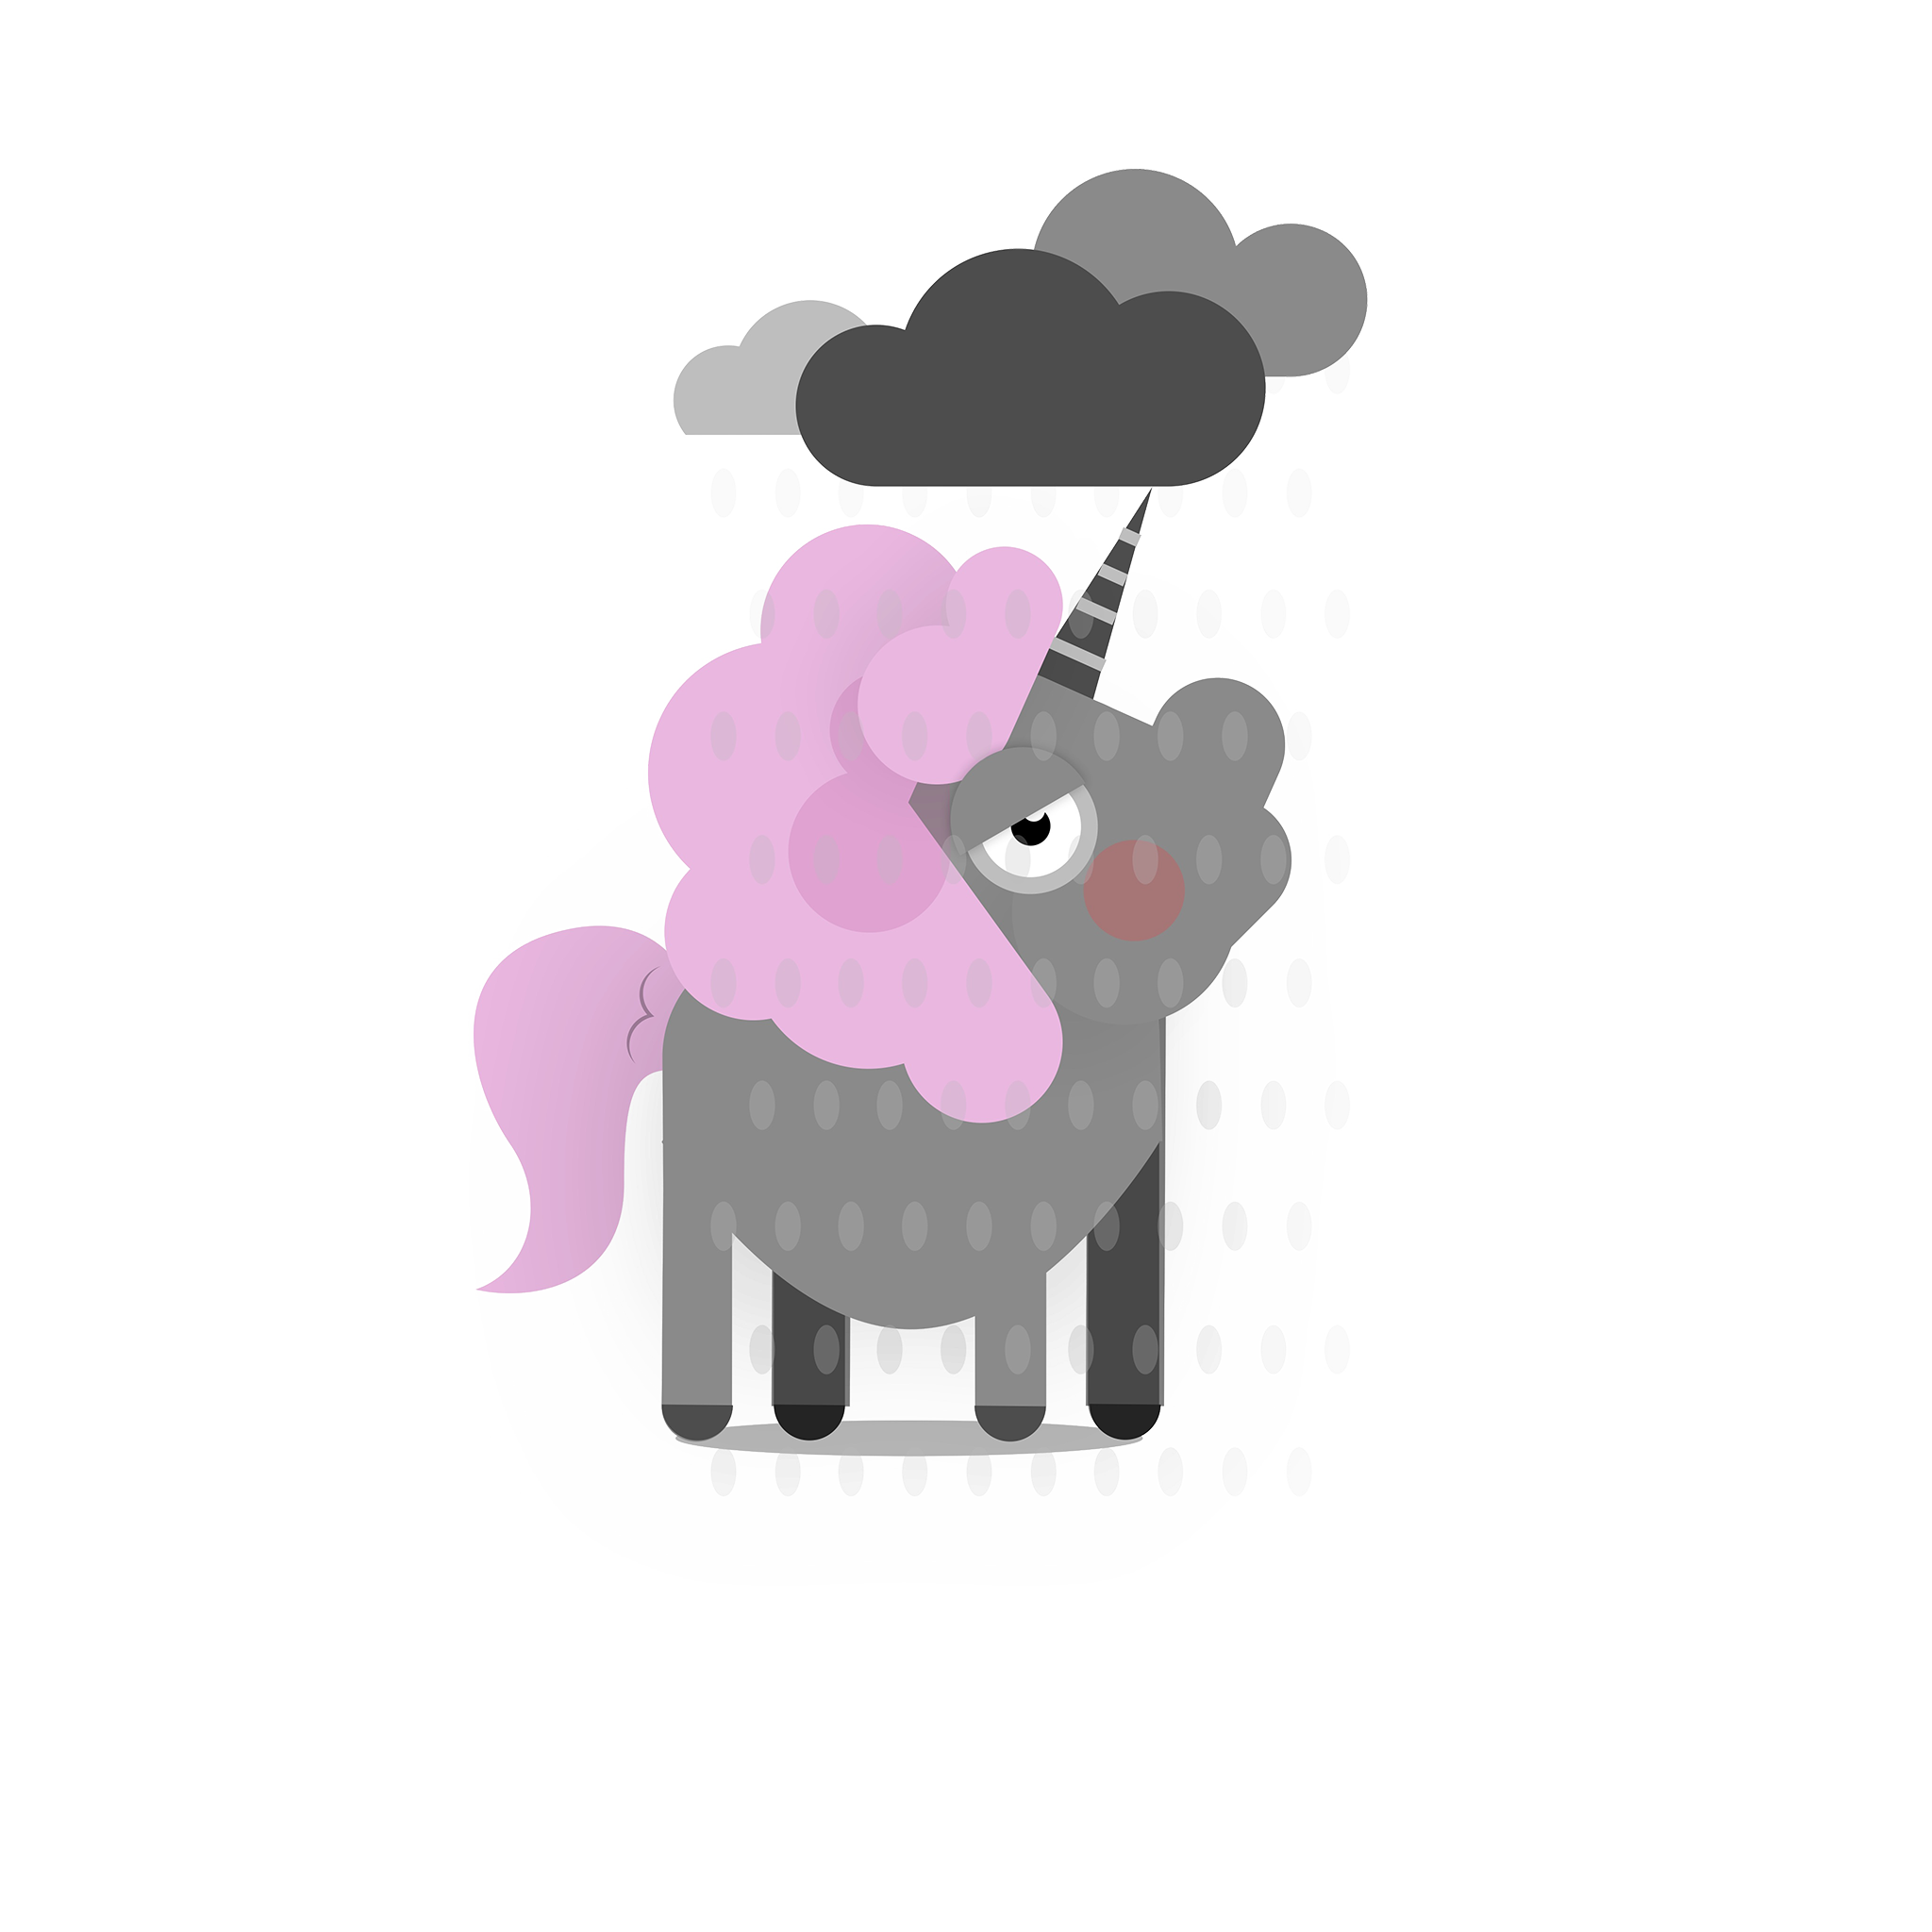 Bad Unicorn Sticker messages sticker-8